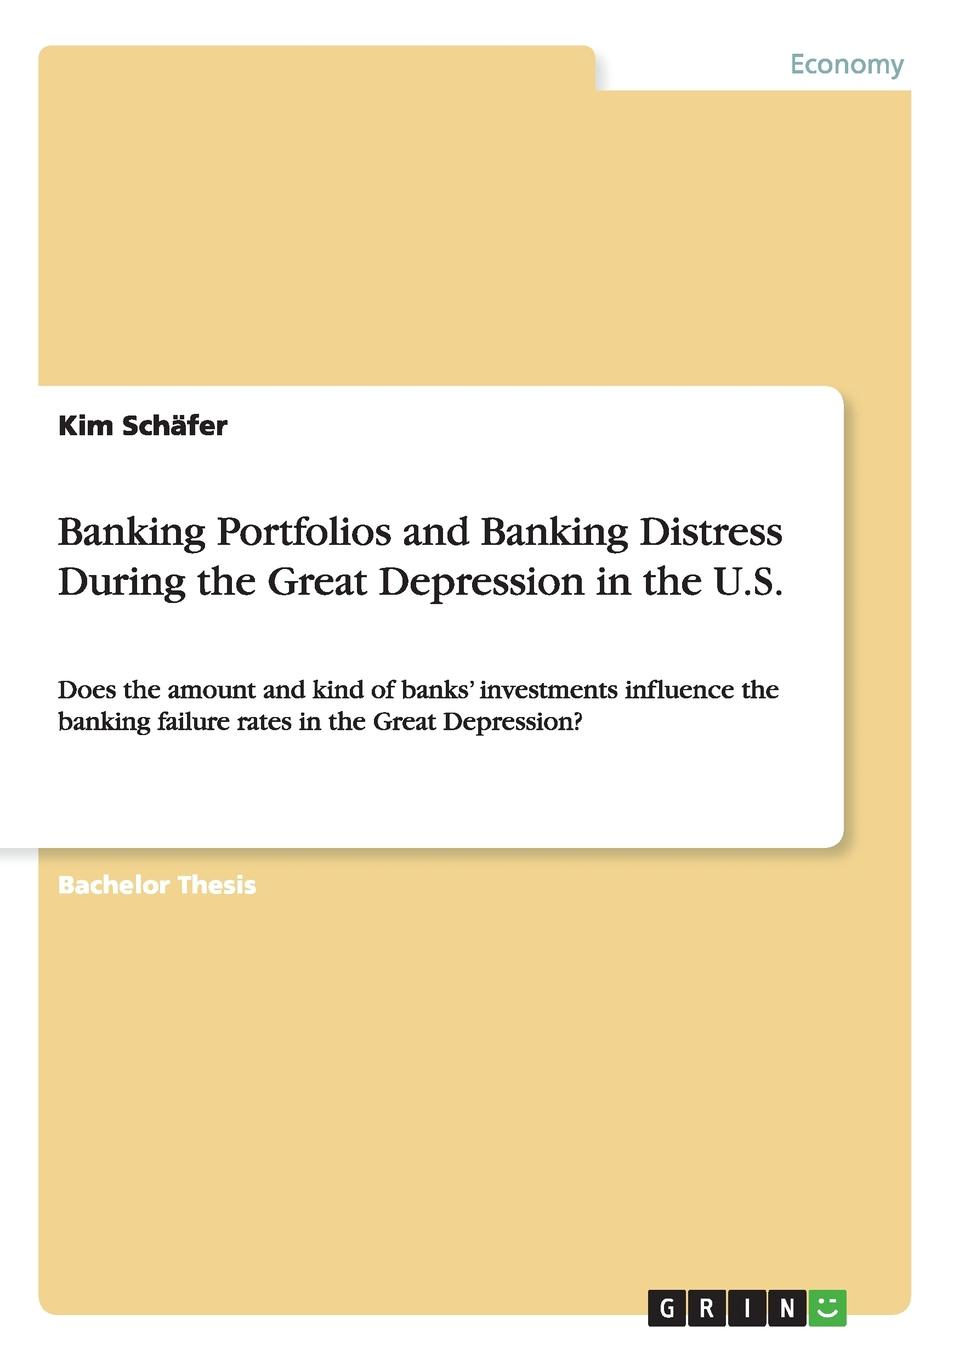 Kim Schäfer Banking Portfolios and Banking Distress During the Great Depression in the U.S. kim schäfer banking portfolios and banking distress during the great depression in the u s